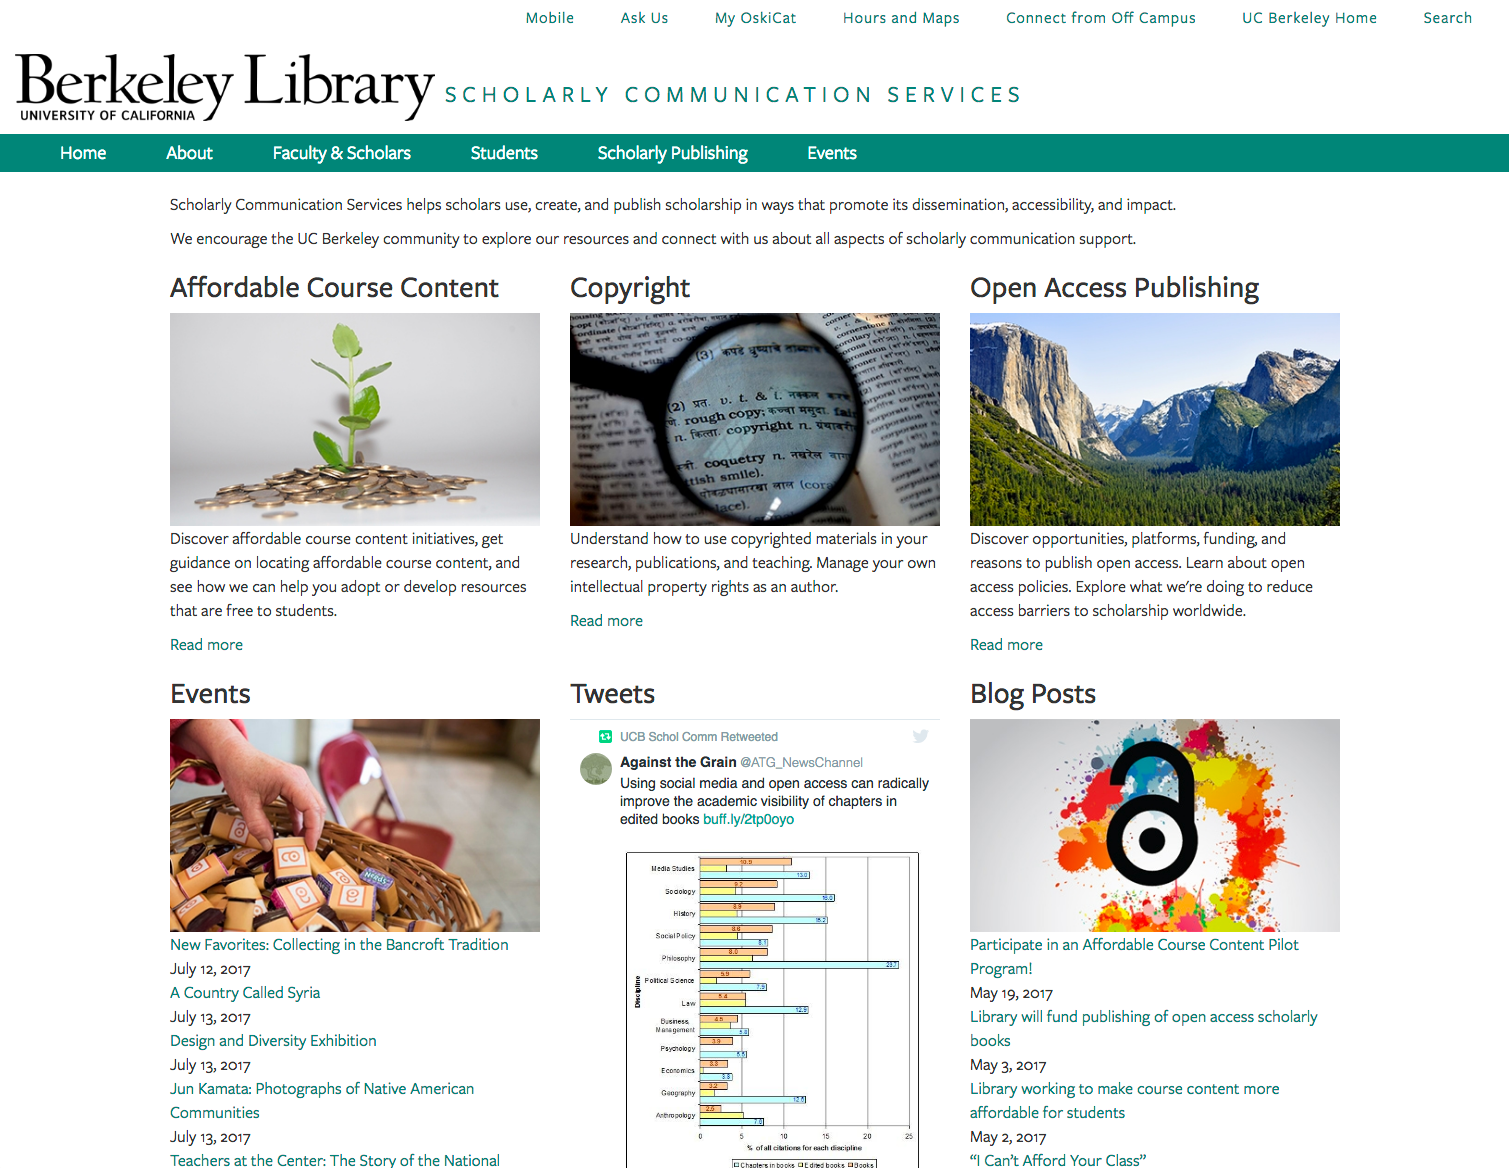 Screenshot of the scholarly communications website